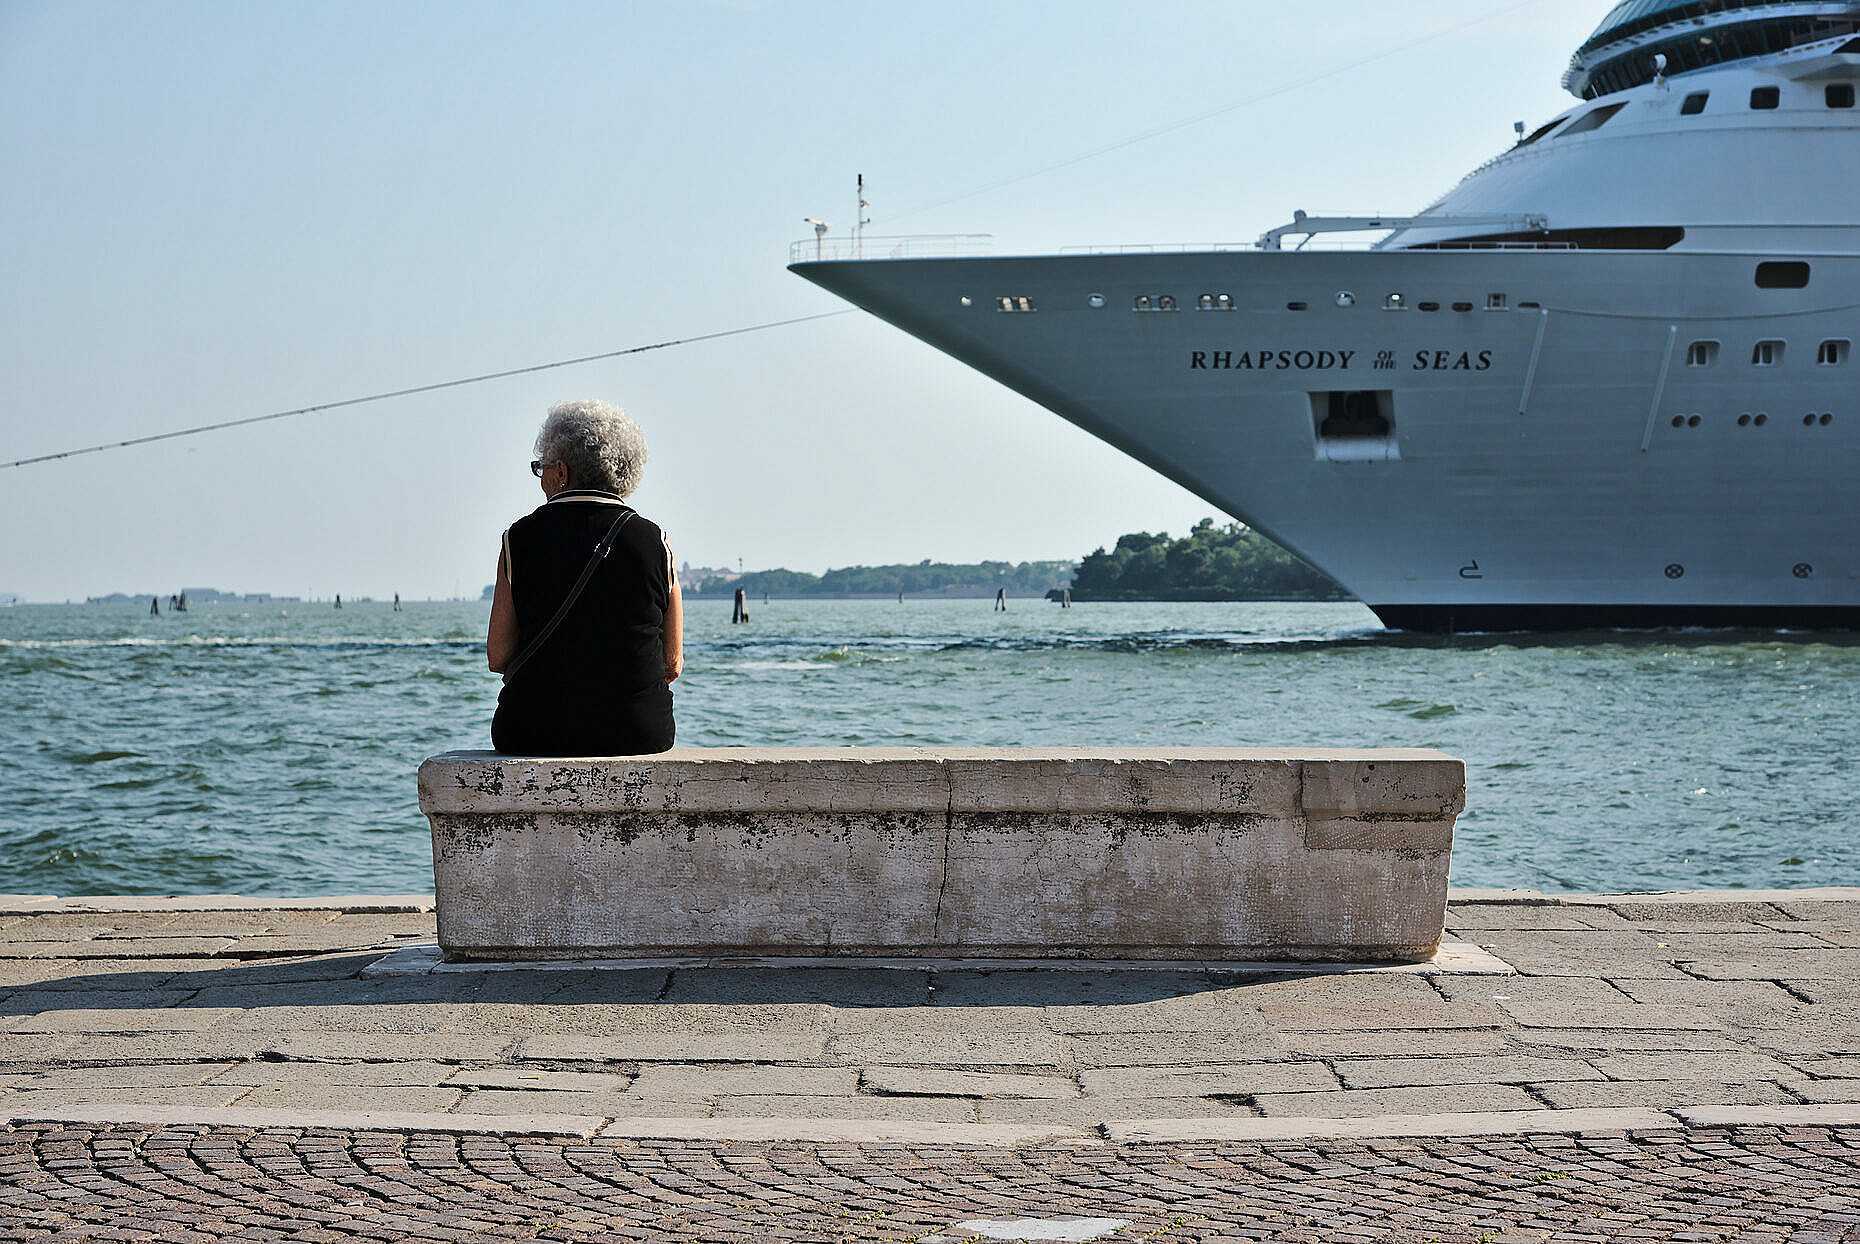 Woman sitting on bench in Venice, with a criuse ship approacing